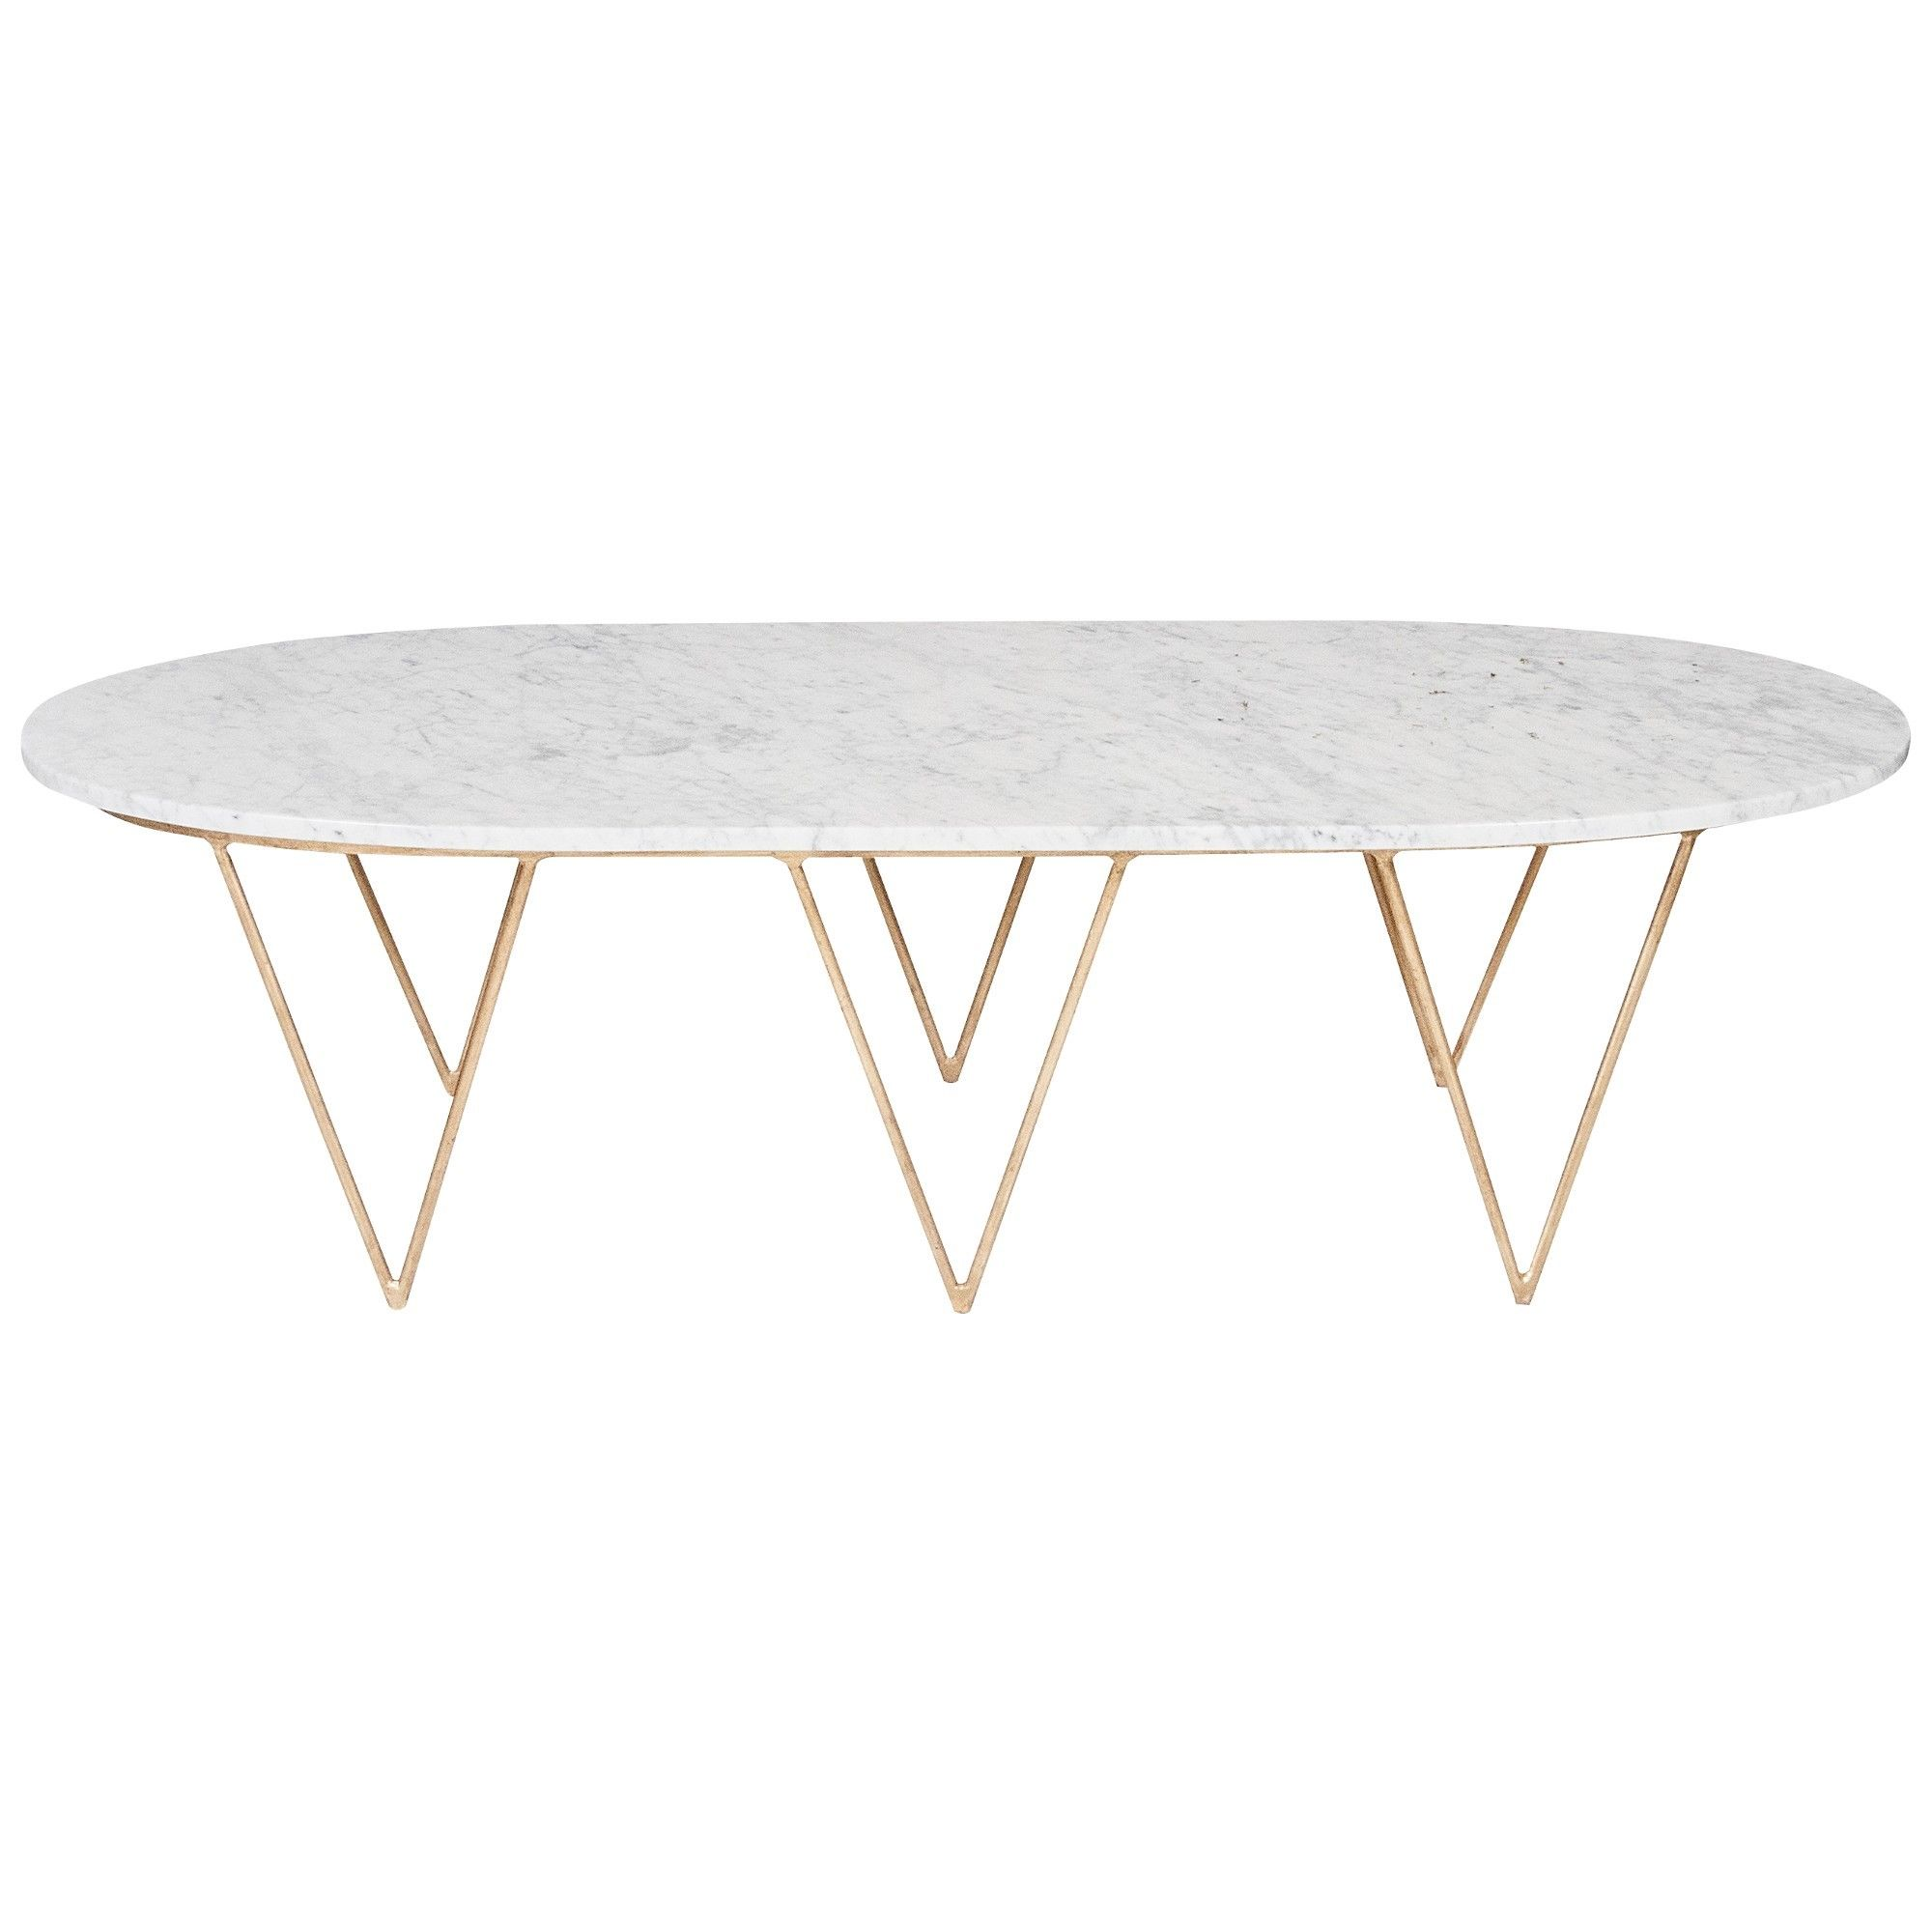 Furniture Oval Unique White Marble Top Coffee Table Ideas For Living Room Sets Full Hd Wallpaper Photographs Astounding